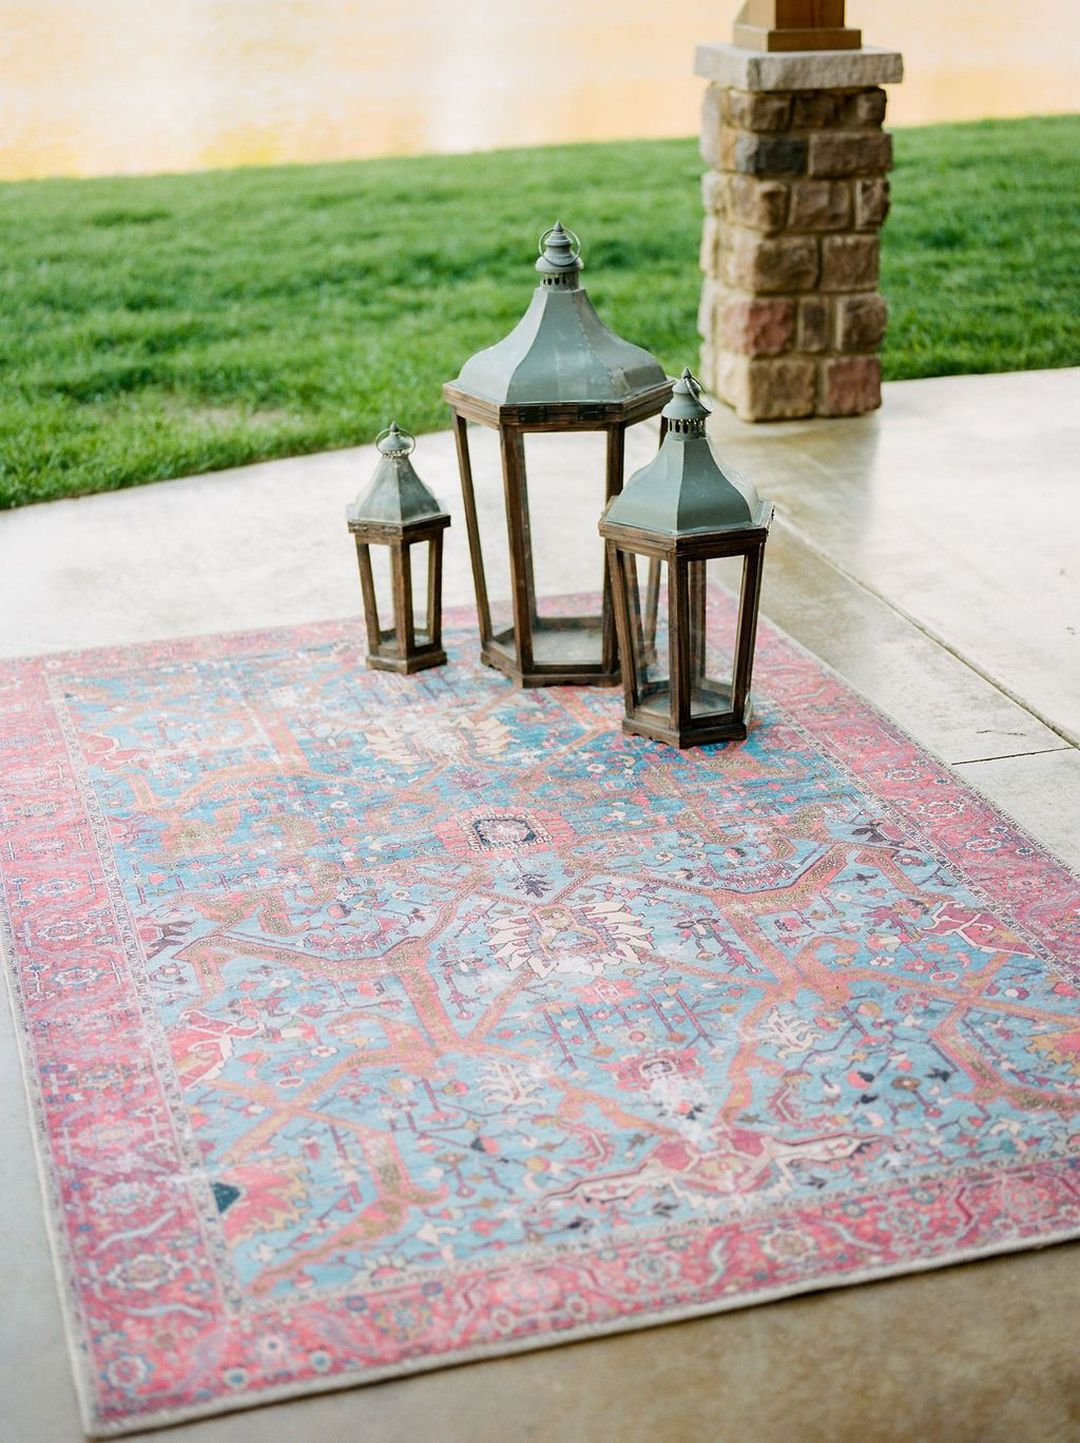 floor lanterns & red-blue rug